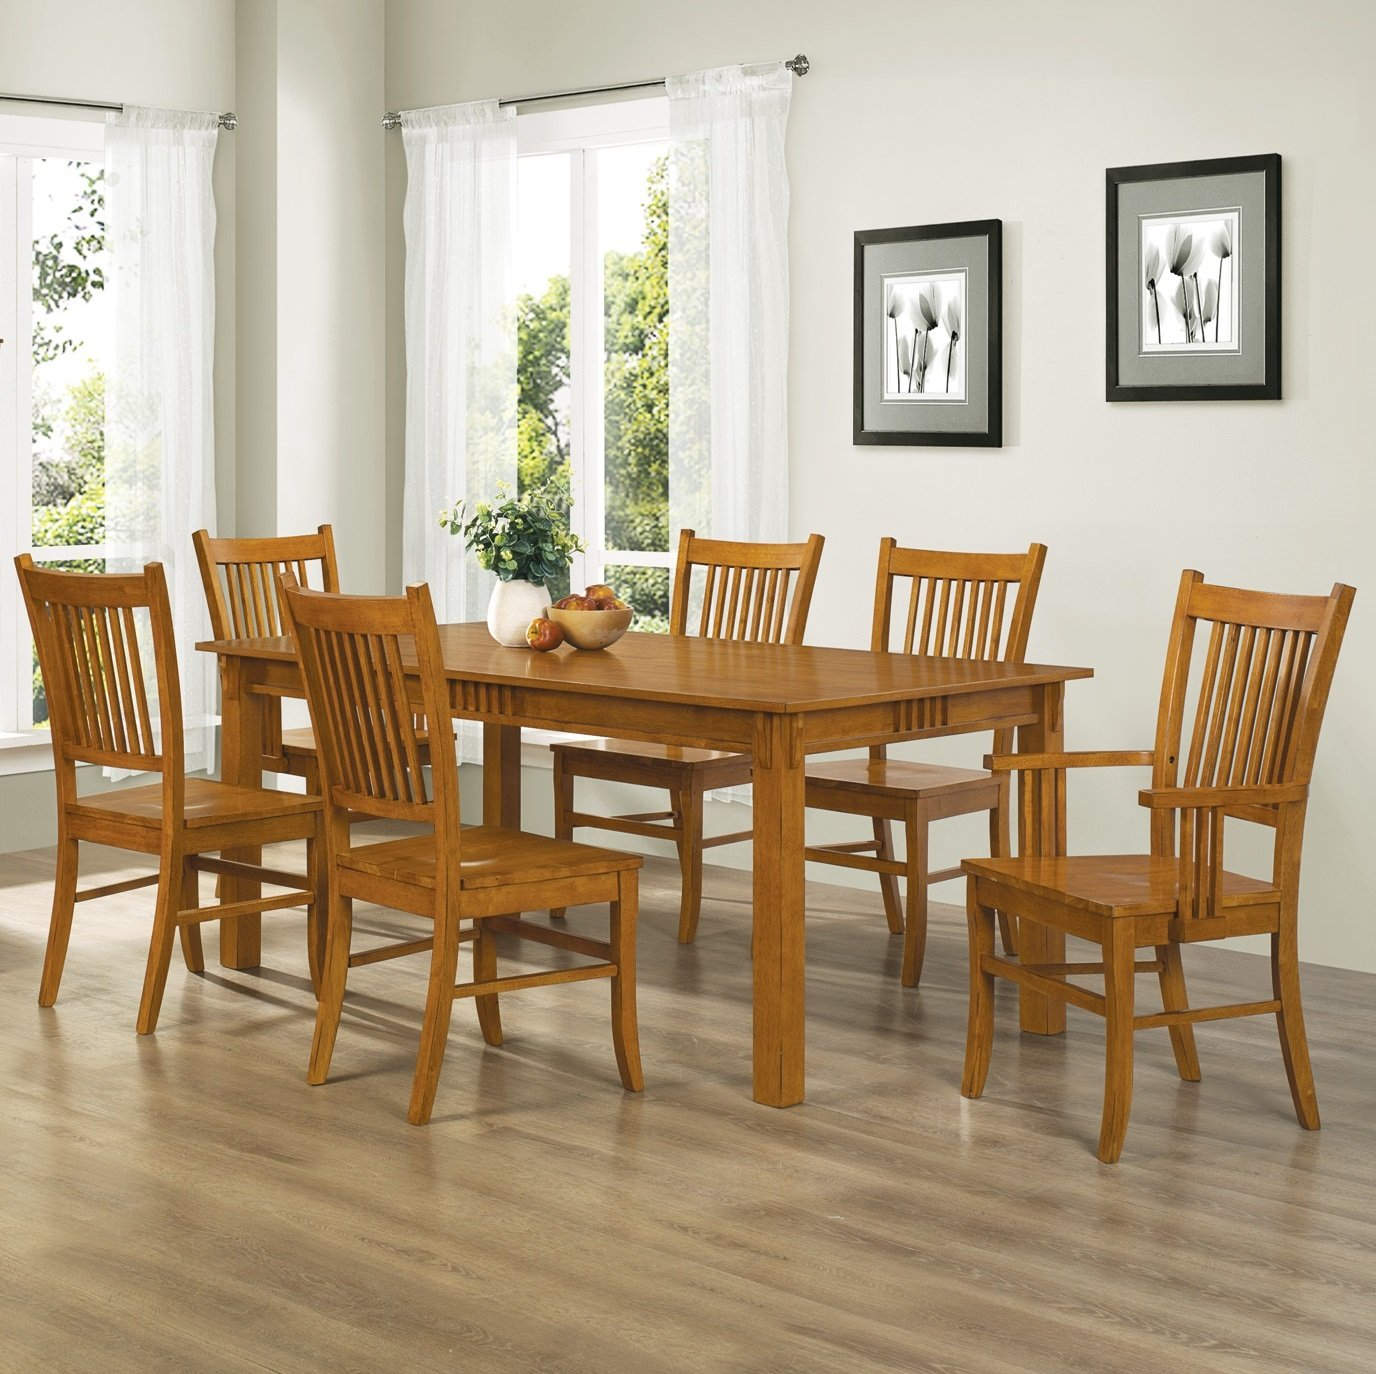 Amazon.com   Coaster Home Furnishings 7 Piece Mission Style Solid Hardwood Dining  Table U0026 Chairs Set   Table U0026 Chair Sets